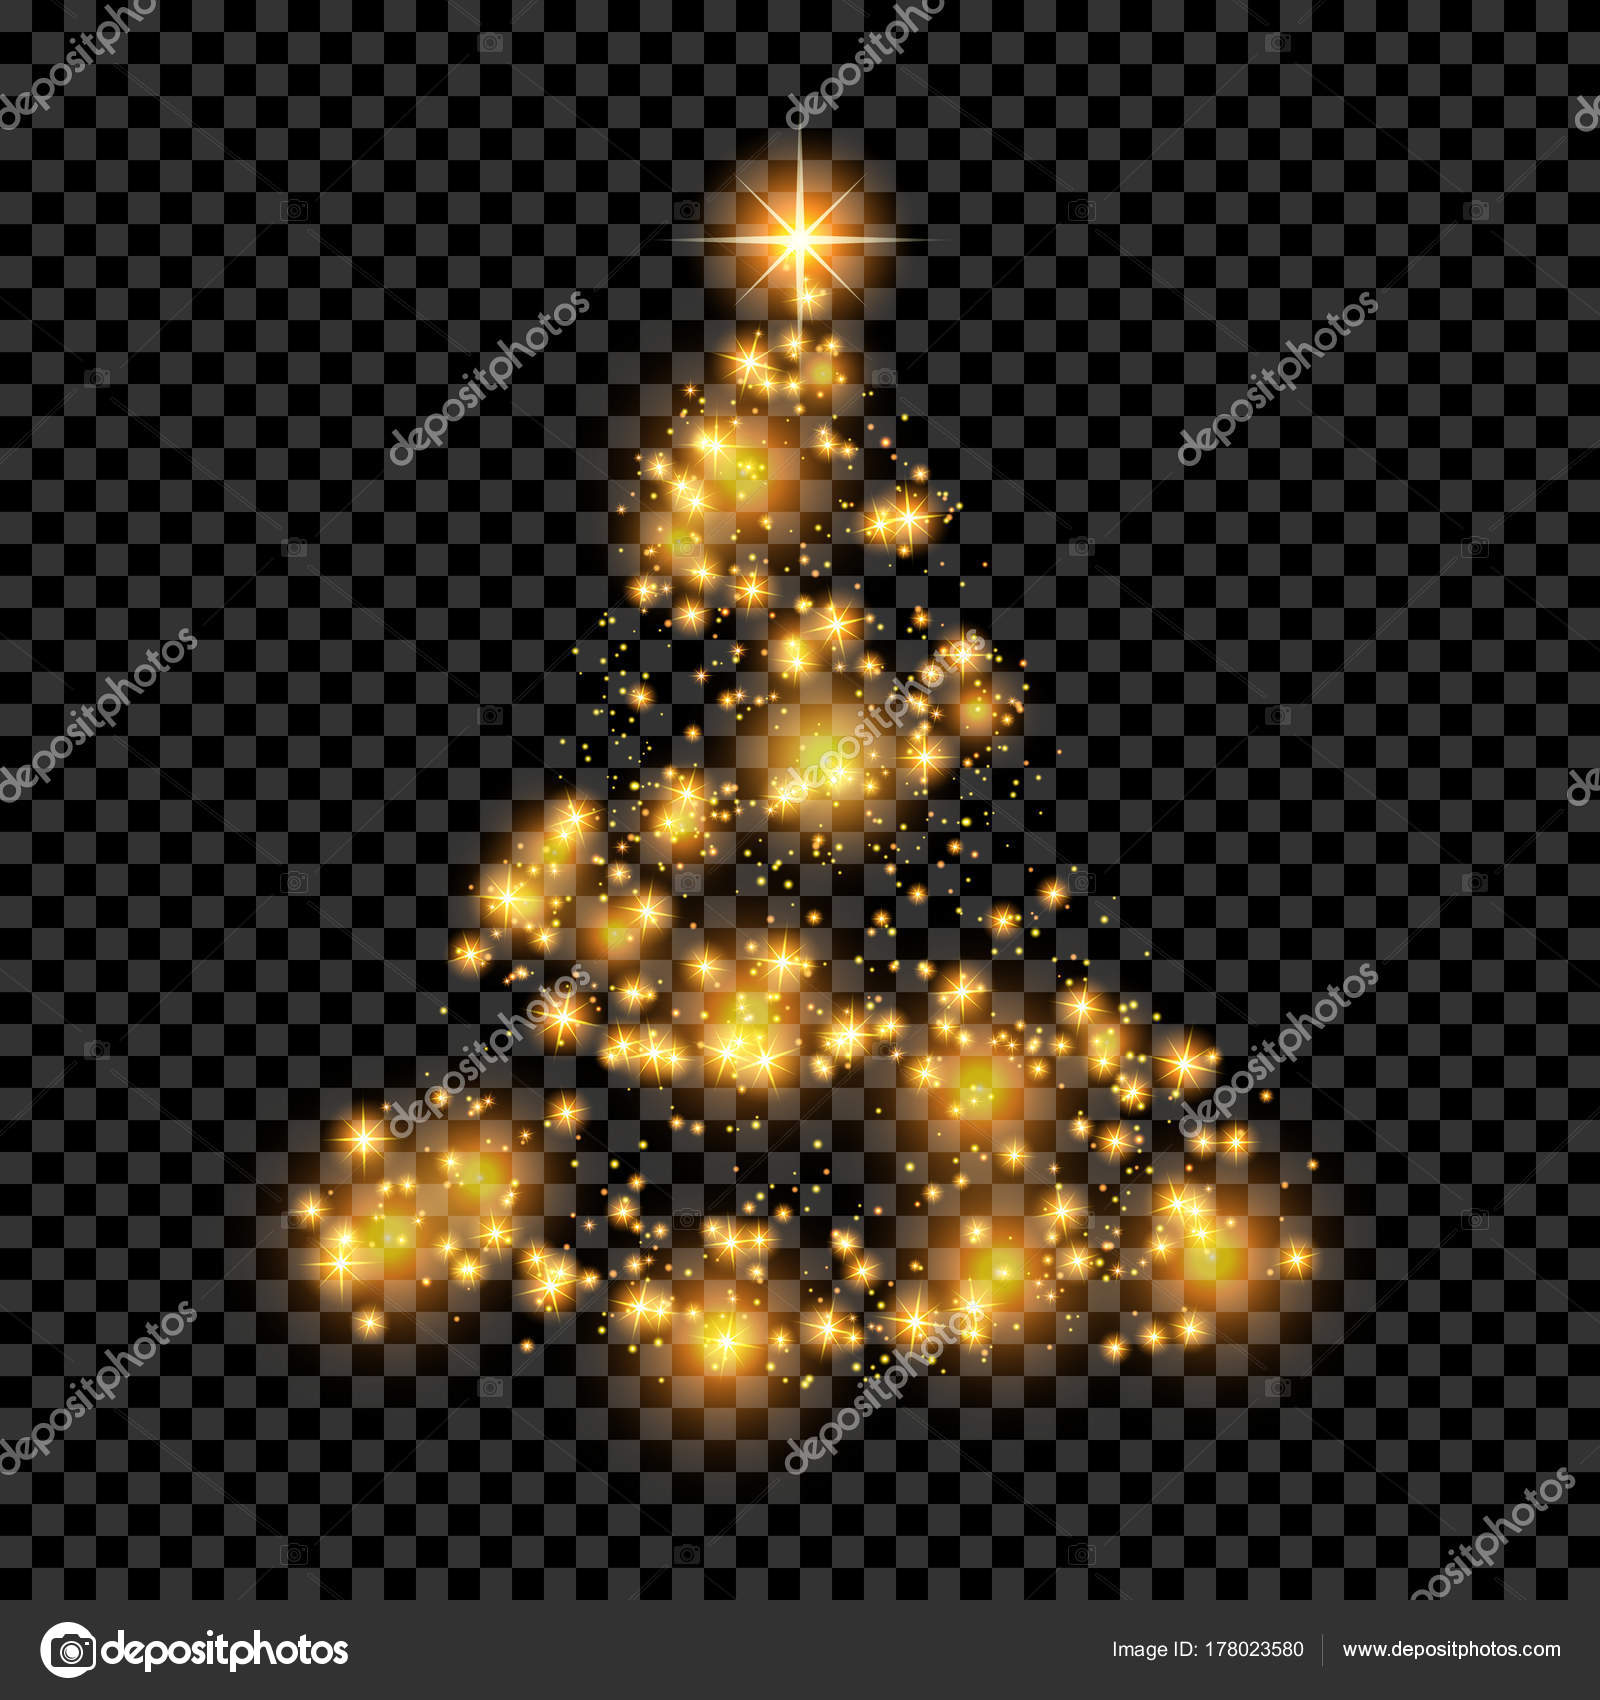 Christmas Tree Transparent Background Stock Vector